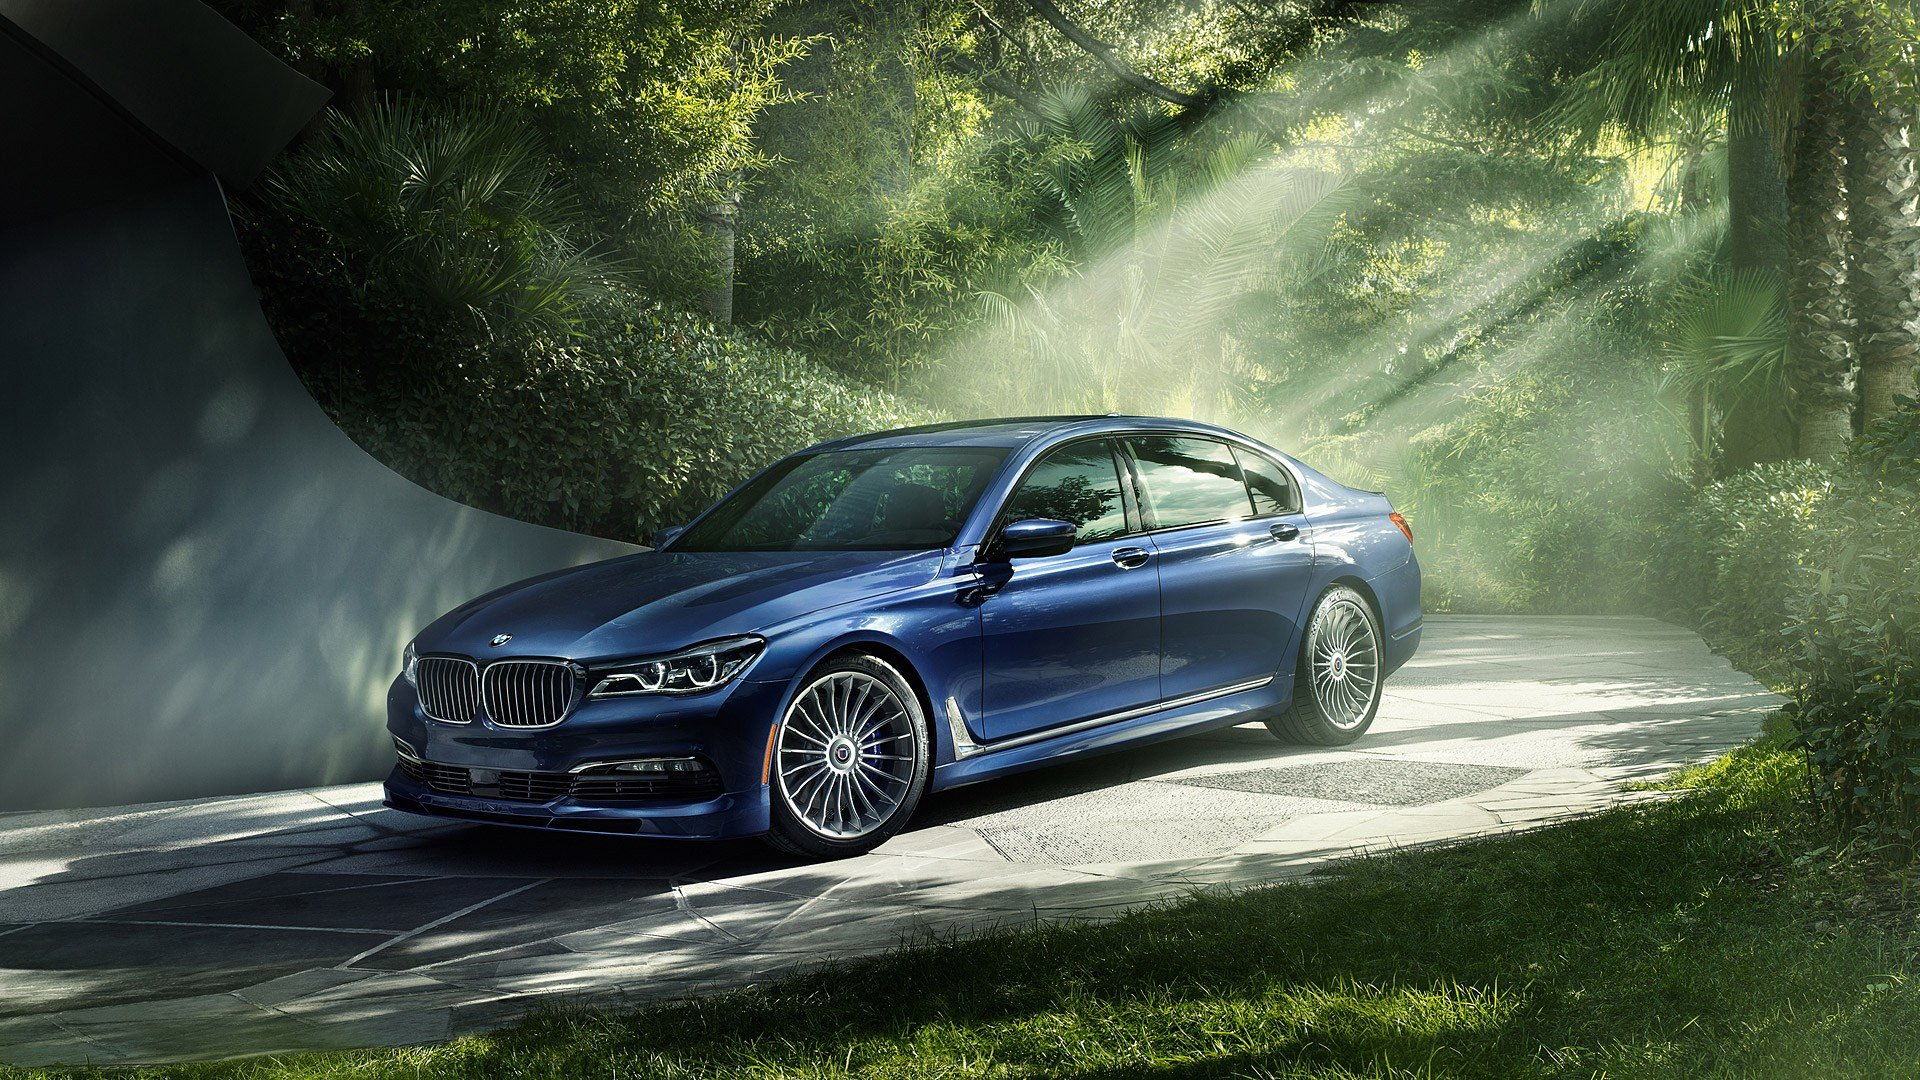 Latest 2017 Alpina Bmw B7 Xdrive Wallpapers Hd Images Wsupercars Free Download